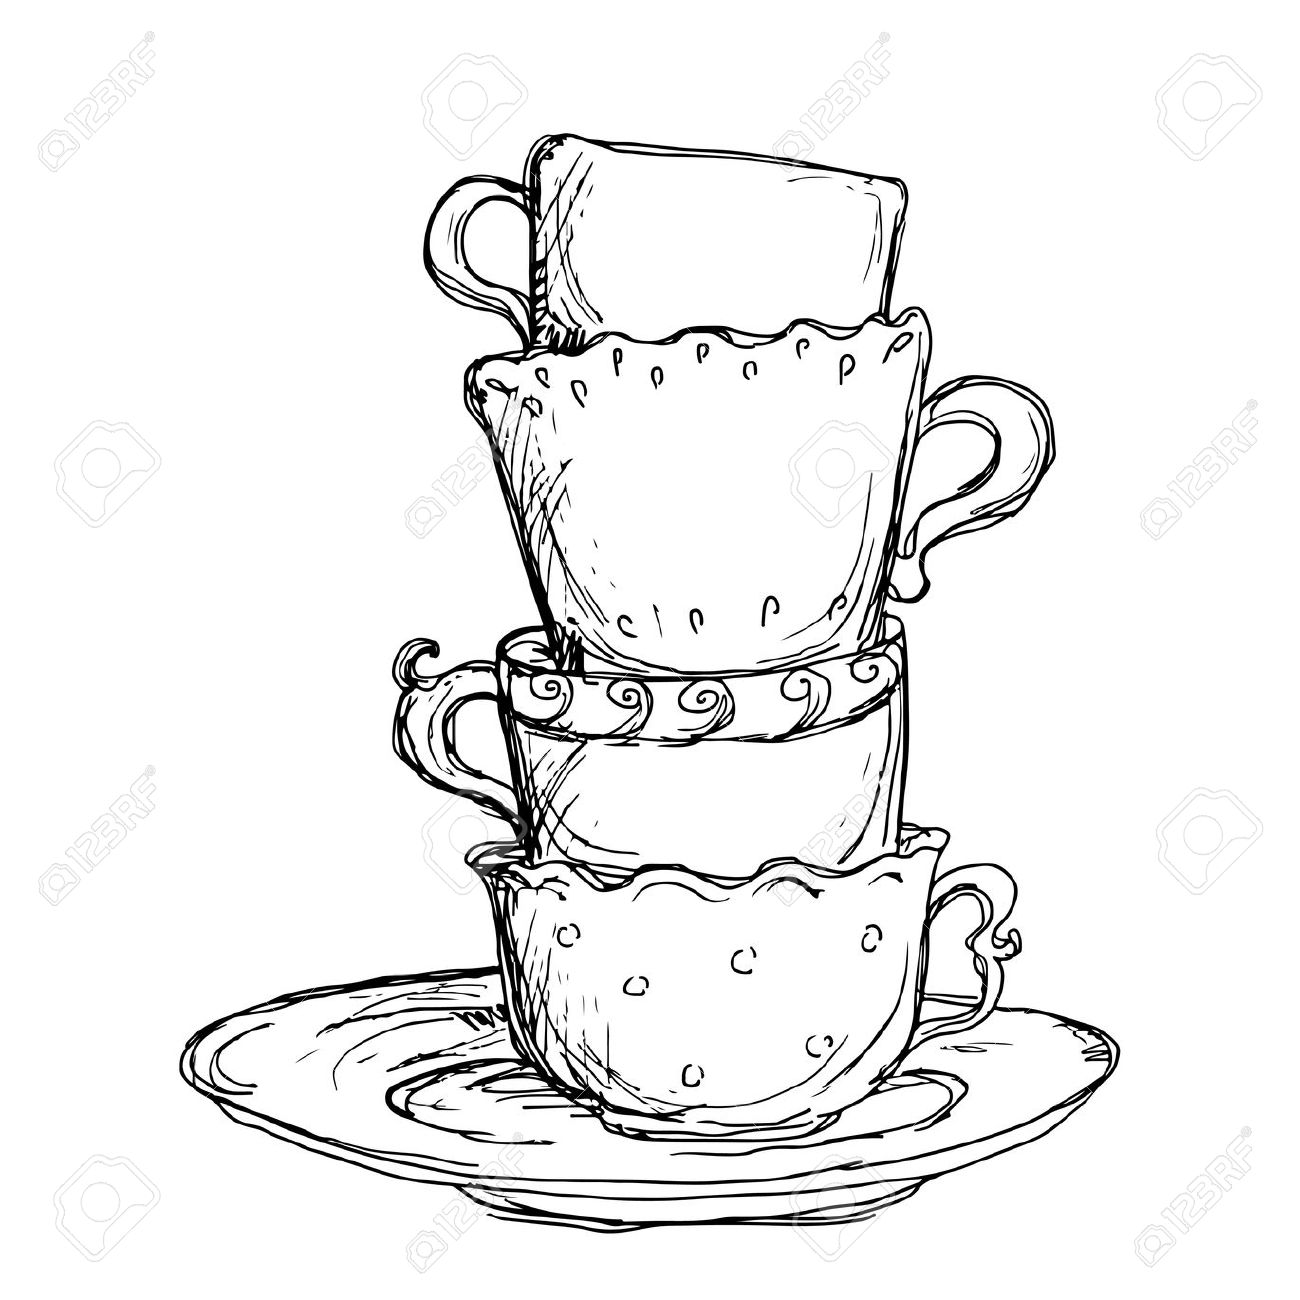 1300x1300 55 Tea Cup Sketch, Tea Party How To Draw A Teacup And Paint